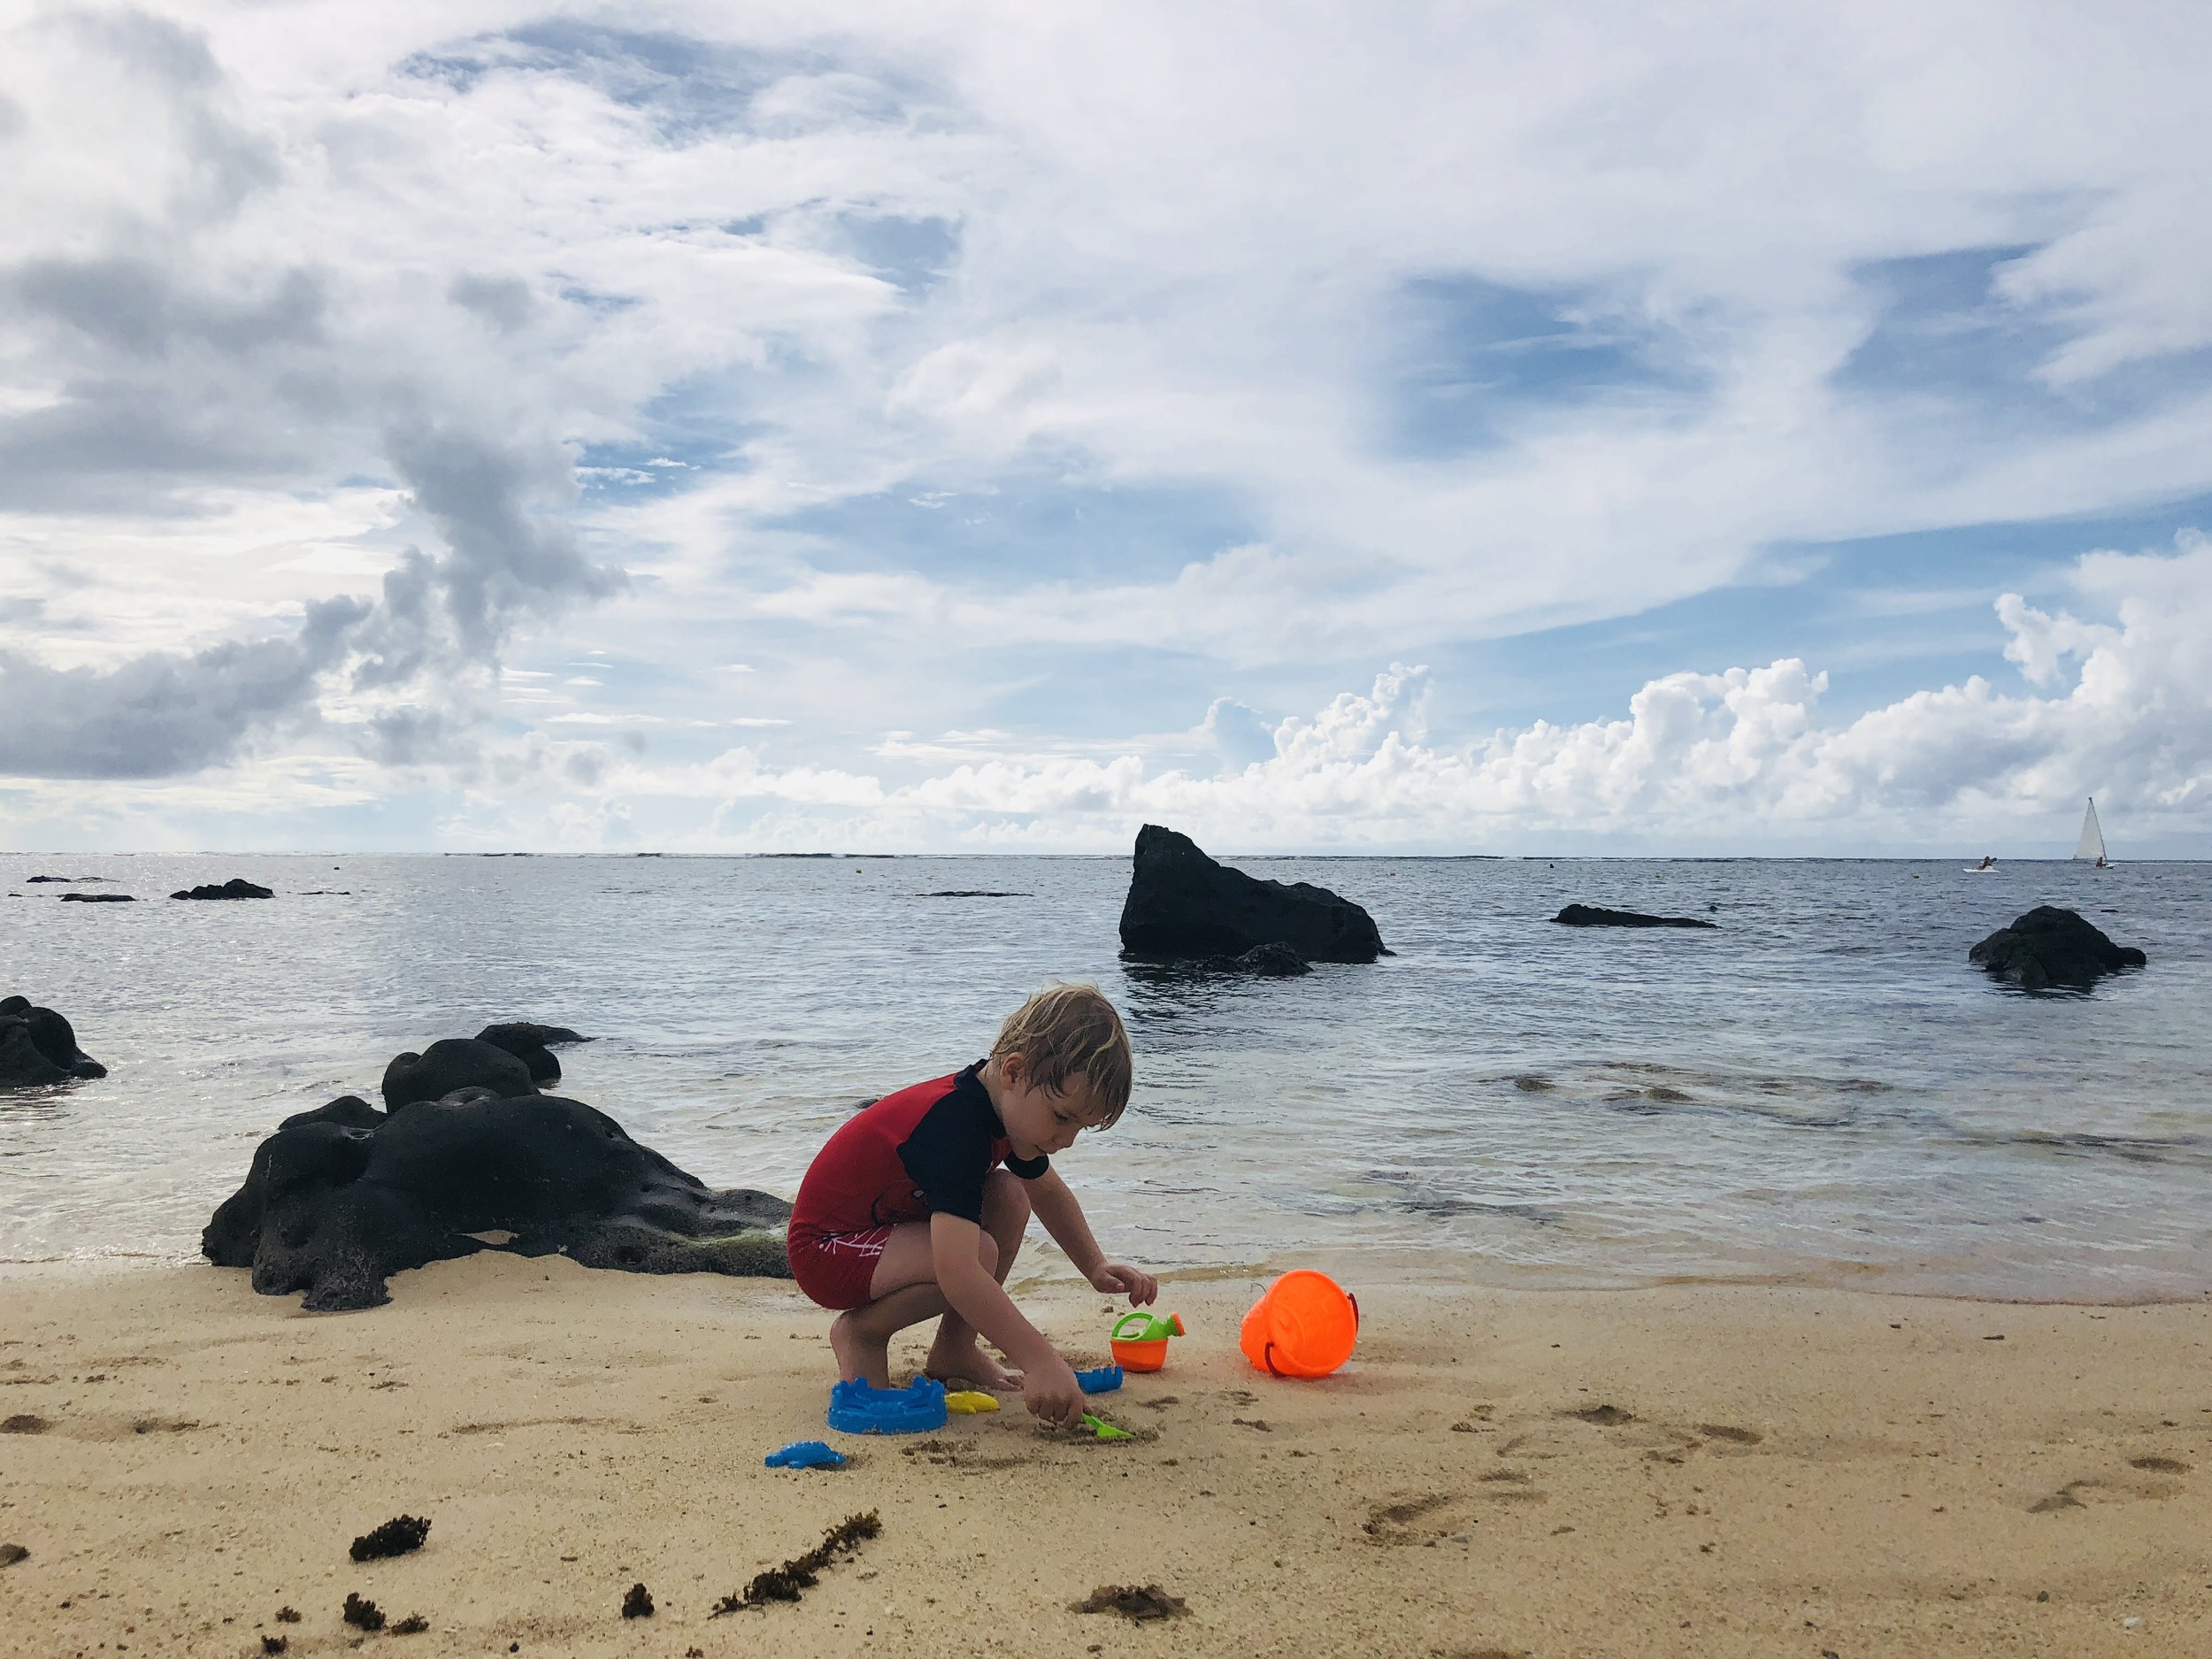 My older son enjoying the beautiful sand & crystal clear water